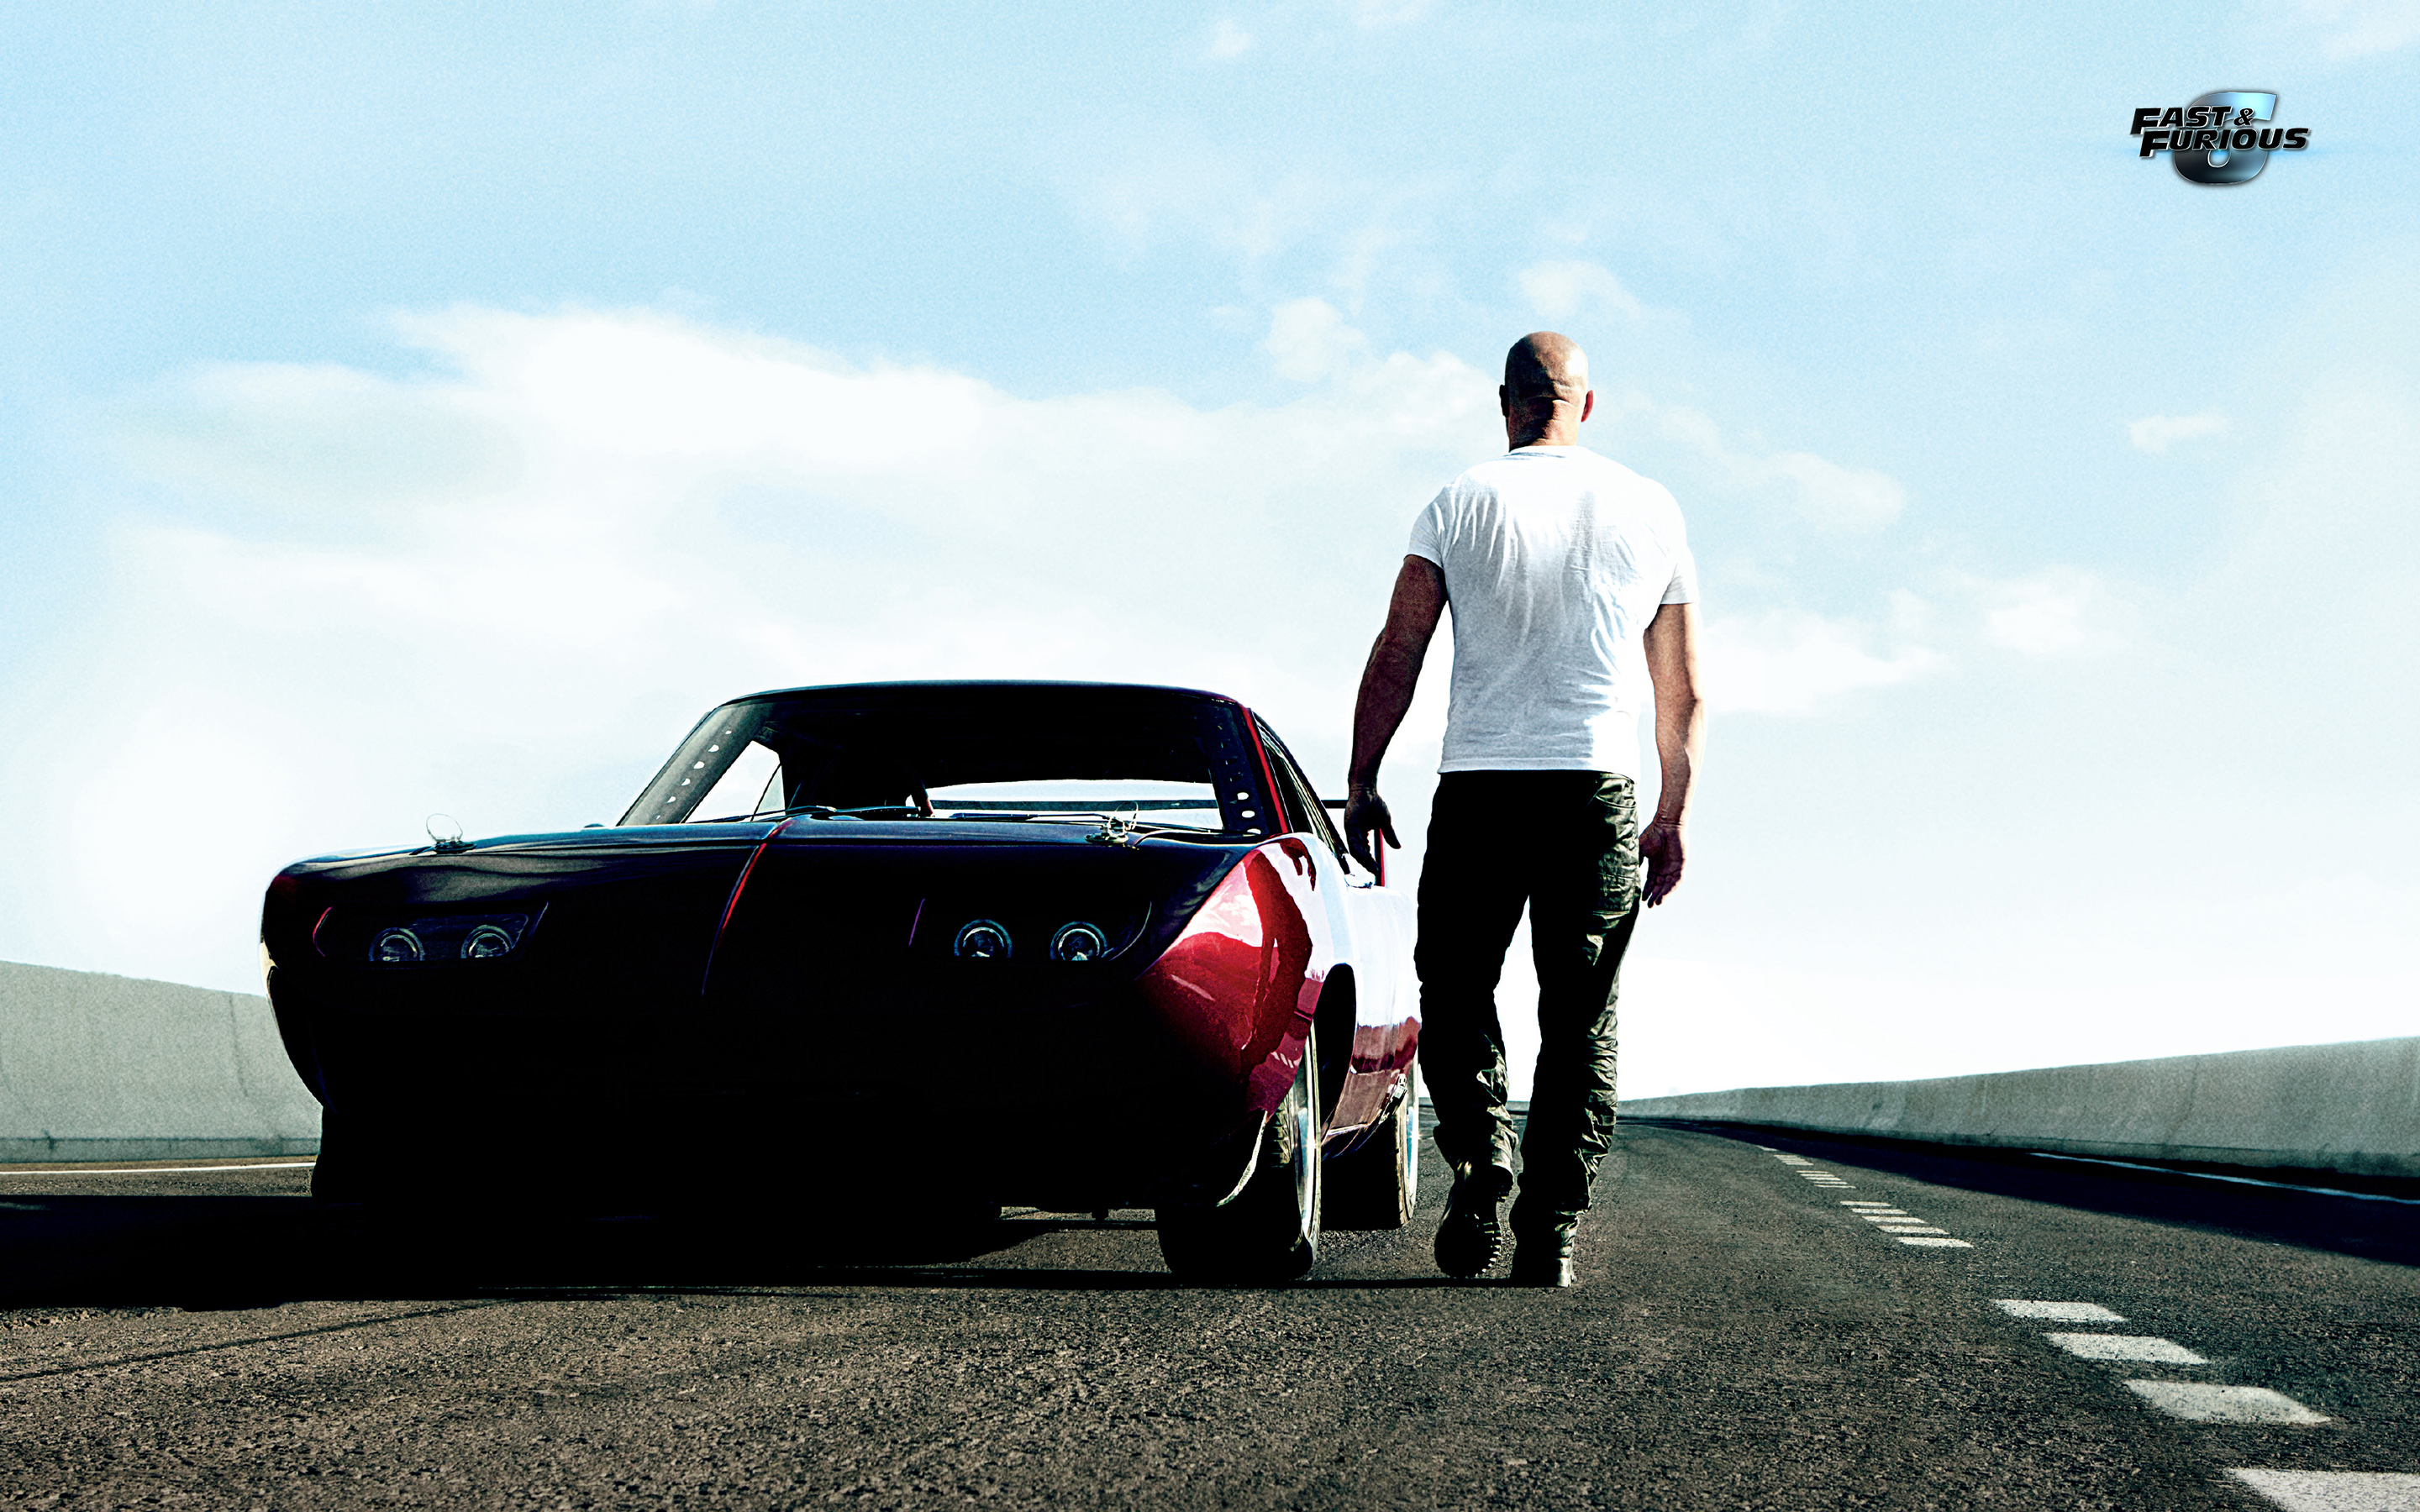 fast and furious 6 wallpaper 1366x768